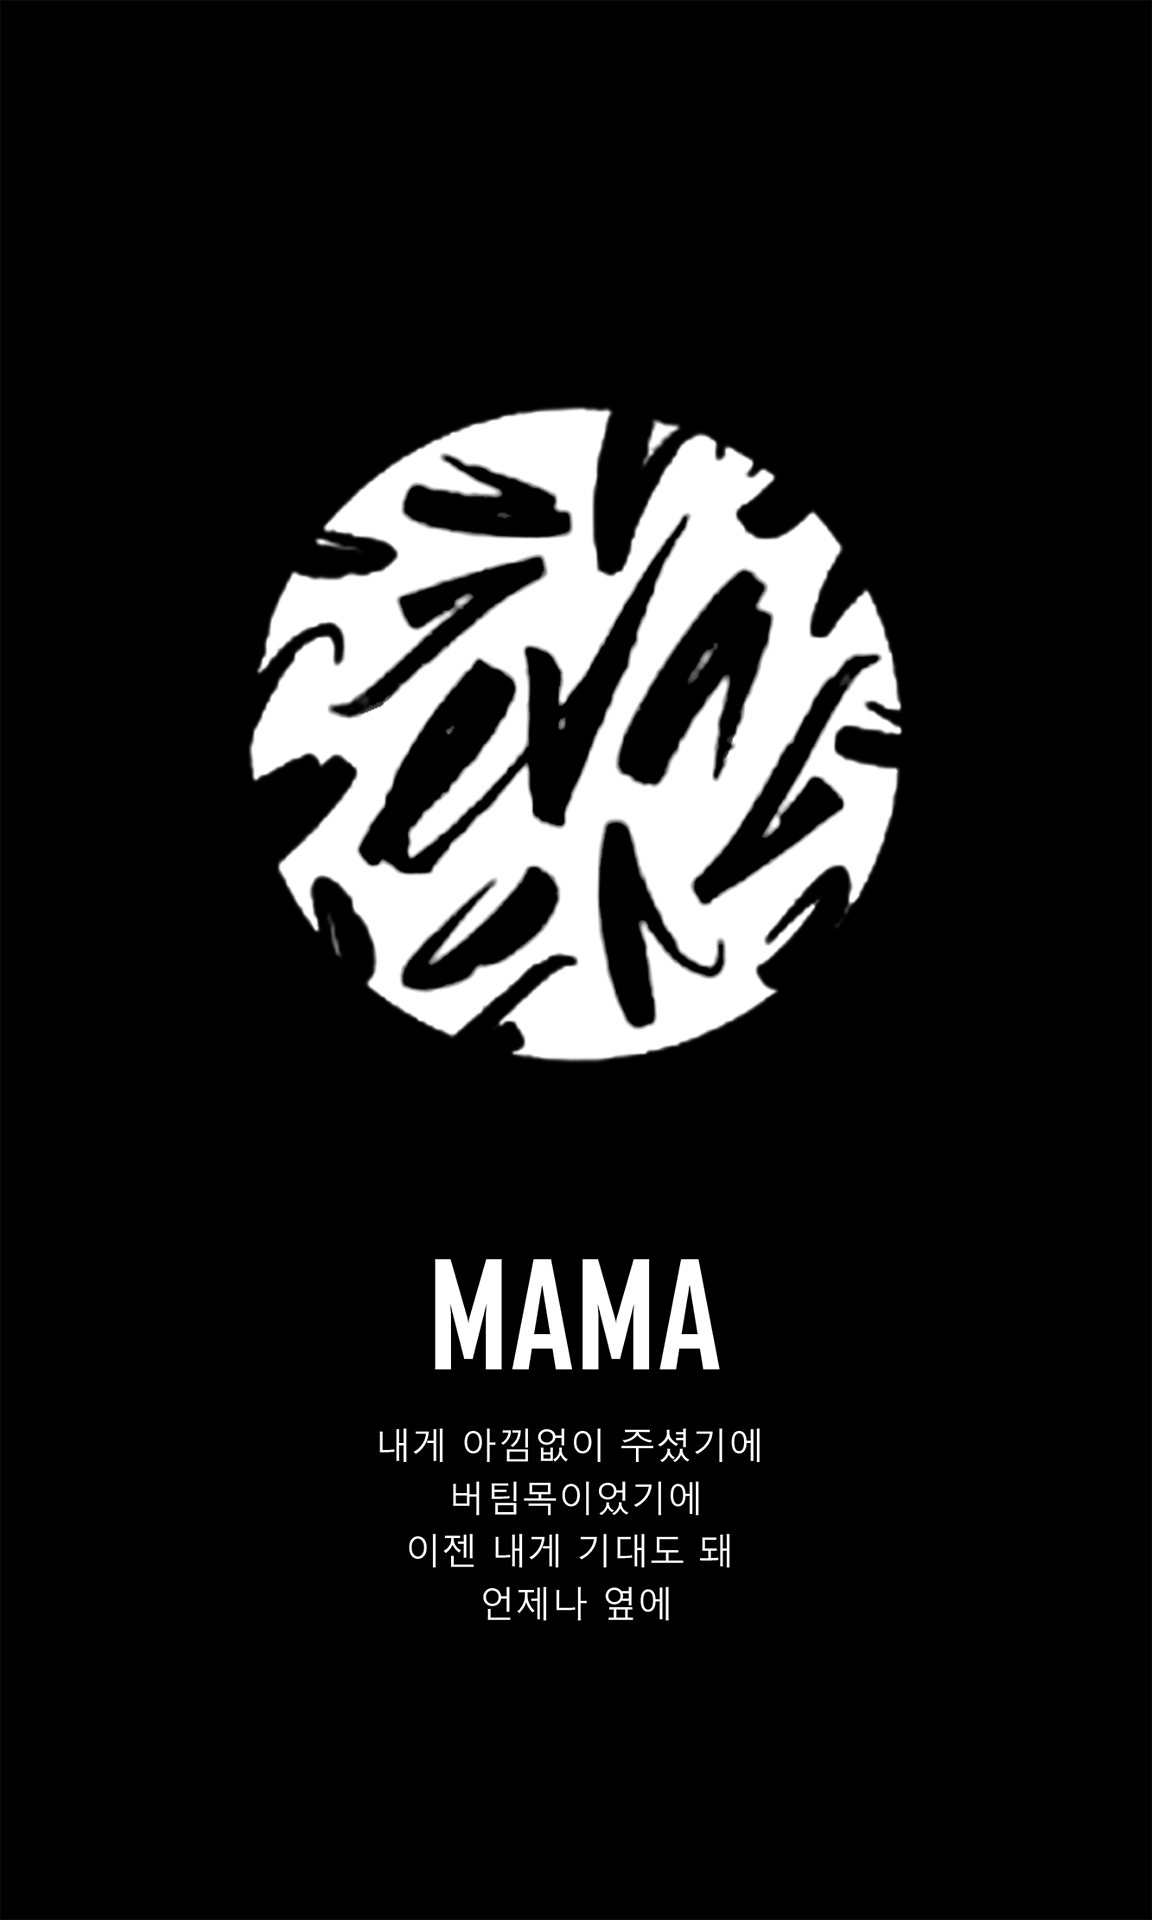 Bts wings short film logo mama wallpaper Korean ver